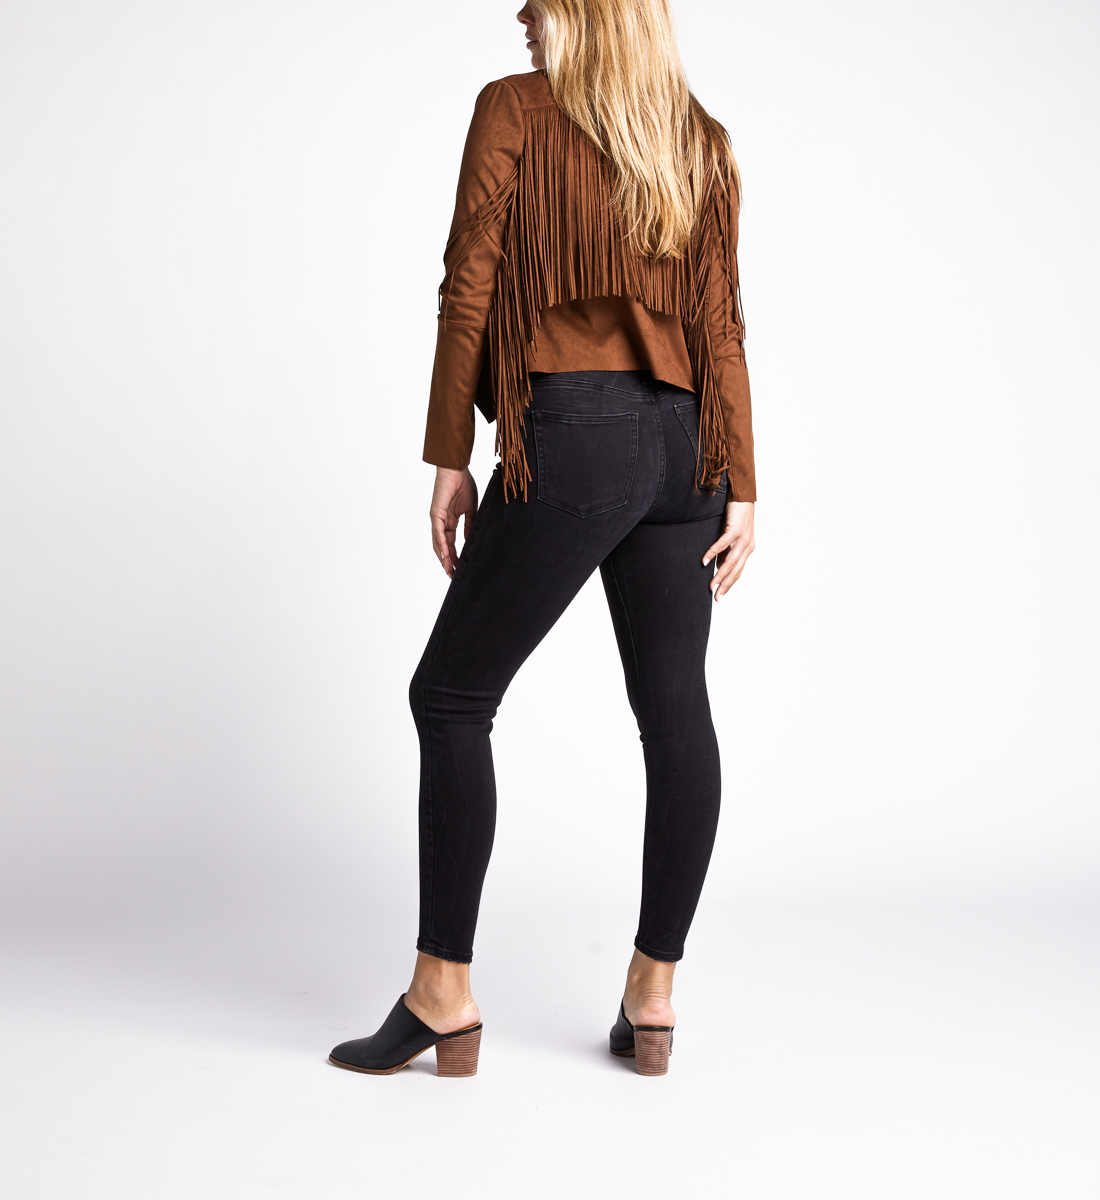 Most Wanted Mid Rise Skinny Leg Jeans,Black Back